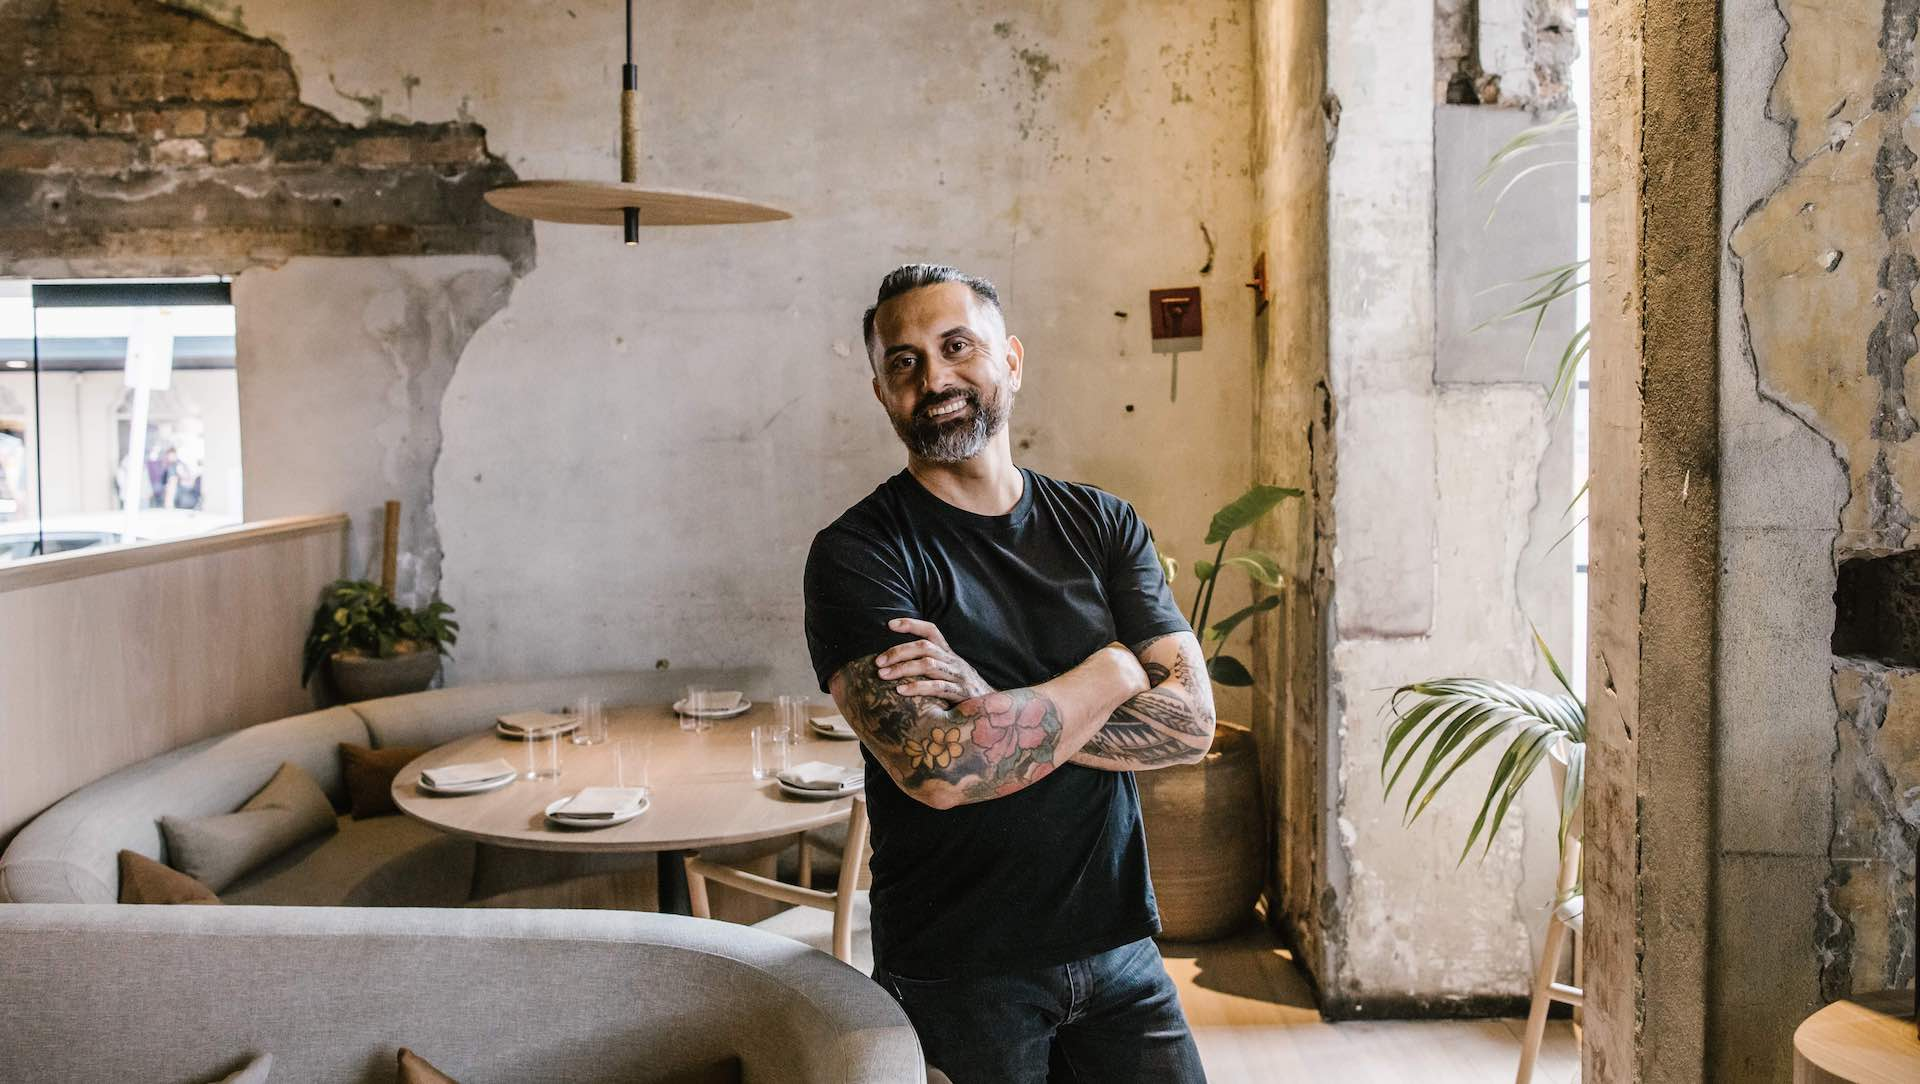 Top Chef Michael Meredith Has Opened a New Restaurant in the Britomart Precinct